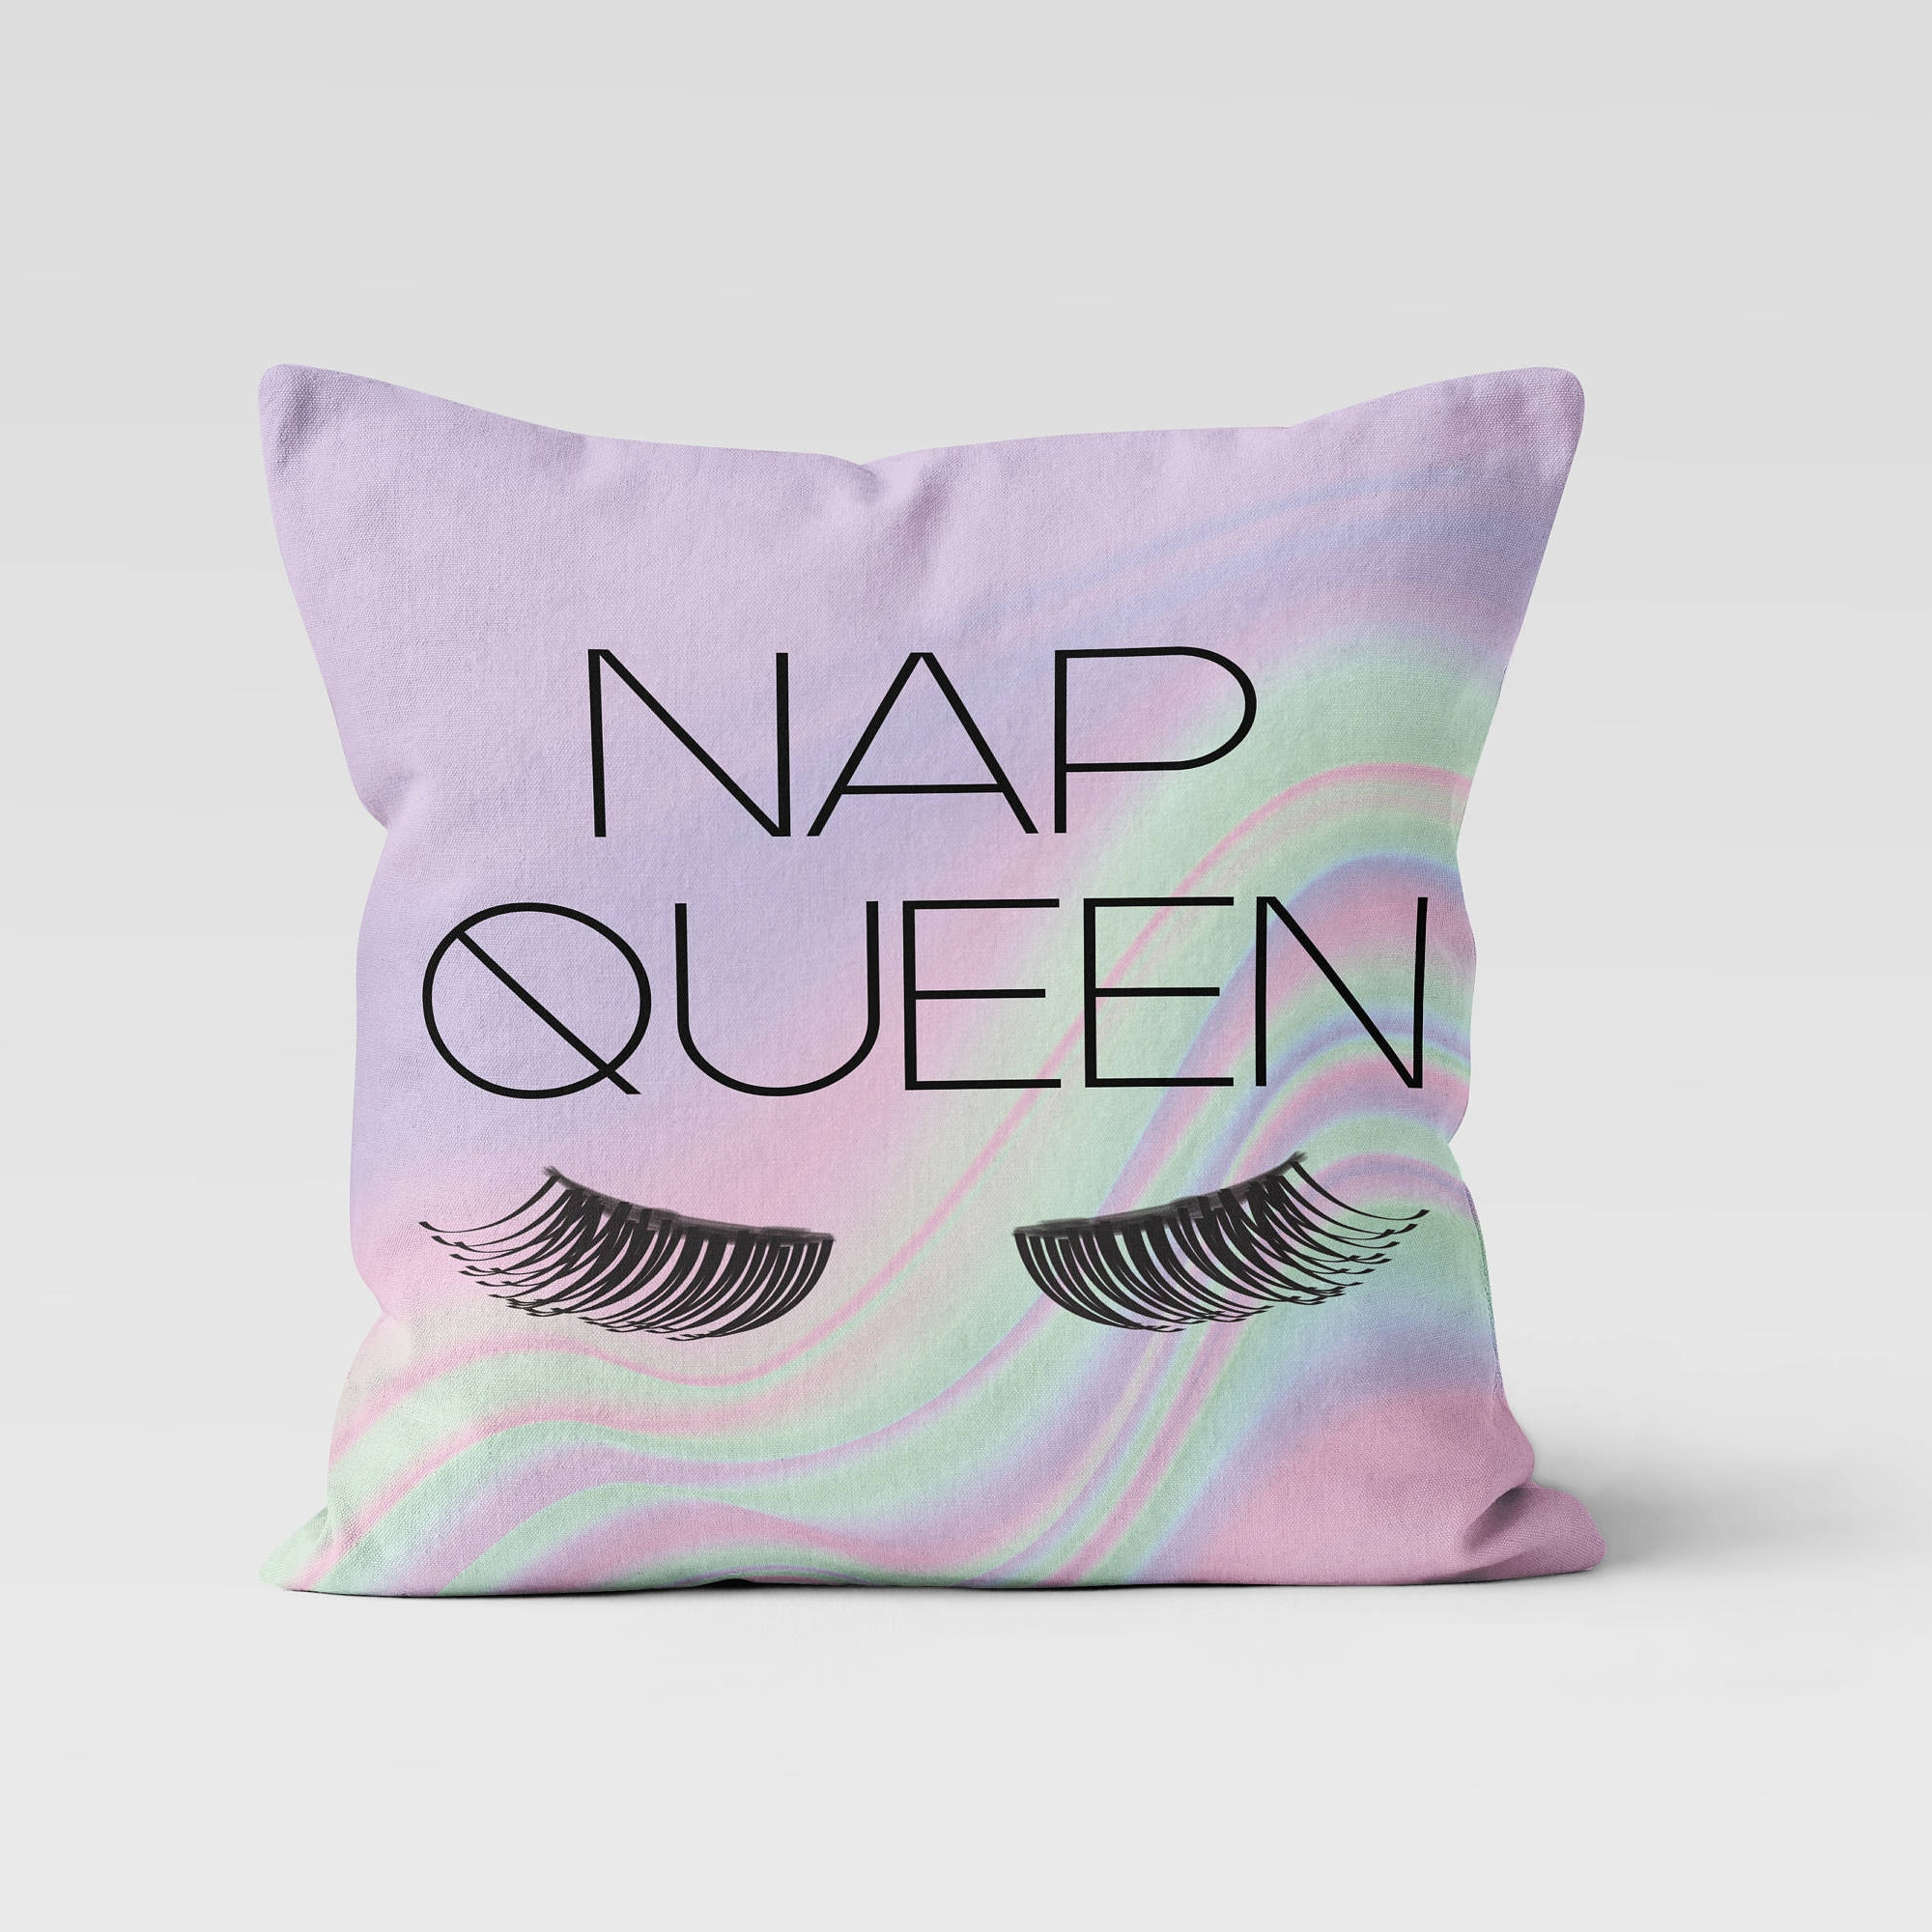 inspirational promo review pillows code beautyfix coupon subscription pets pillow april my of com newspaper free post best shipping limerick box